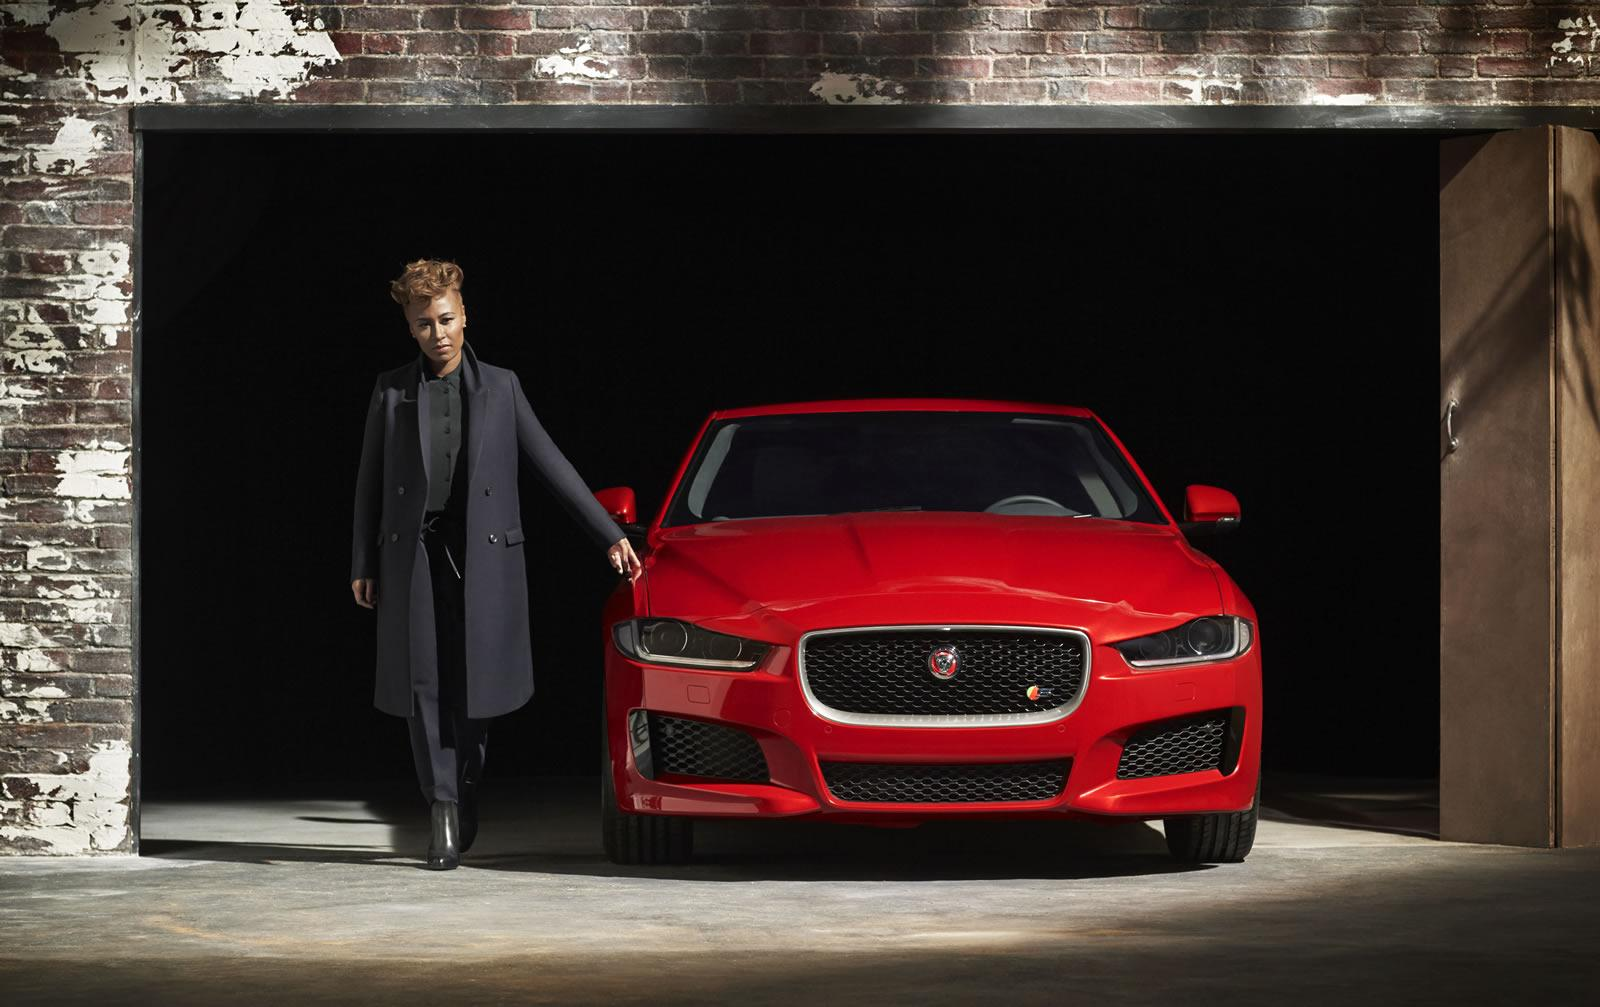 2016 Jaguar Xe First Official Photo Released By Factory